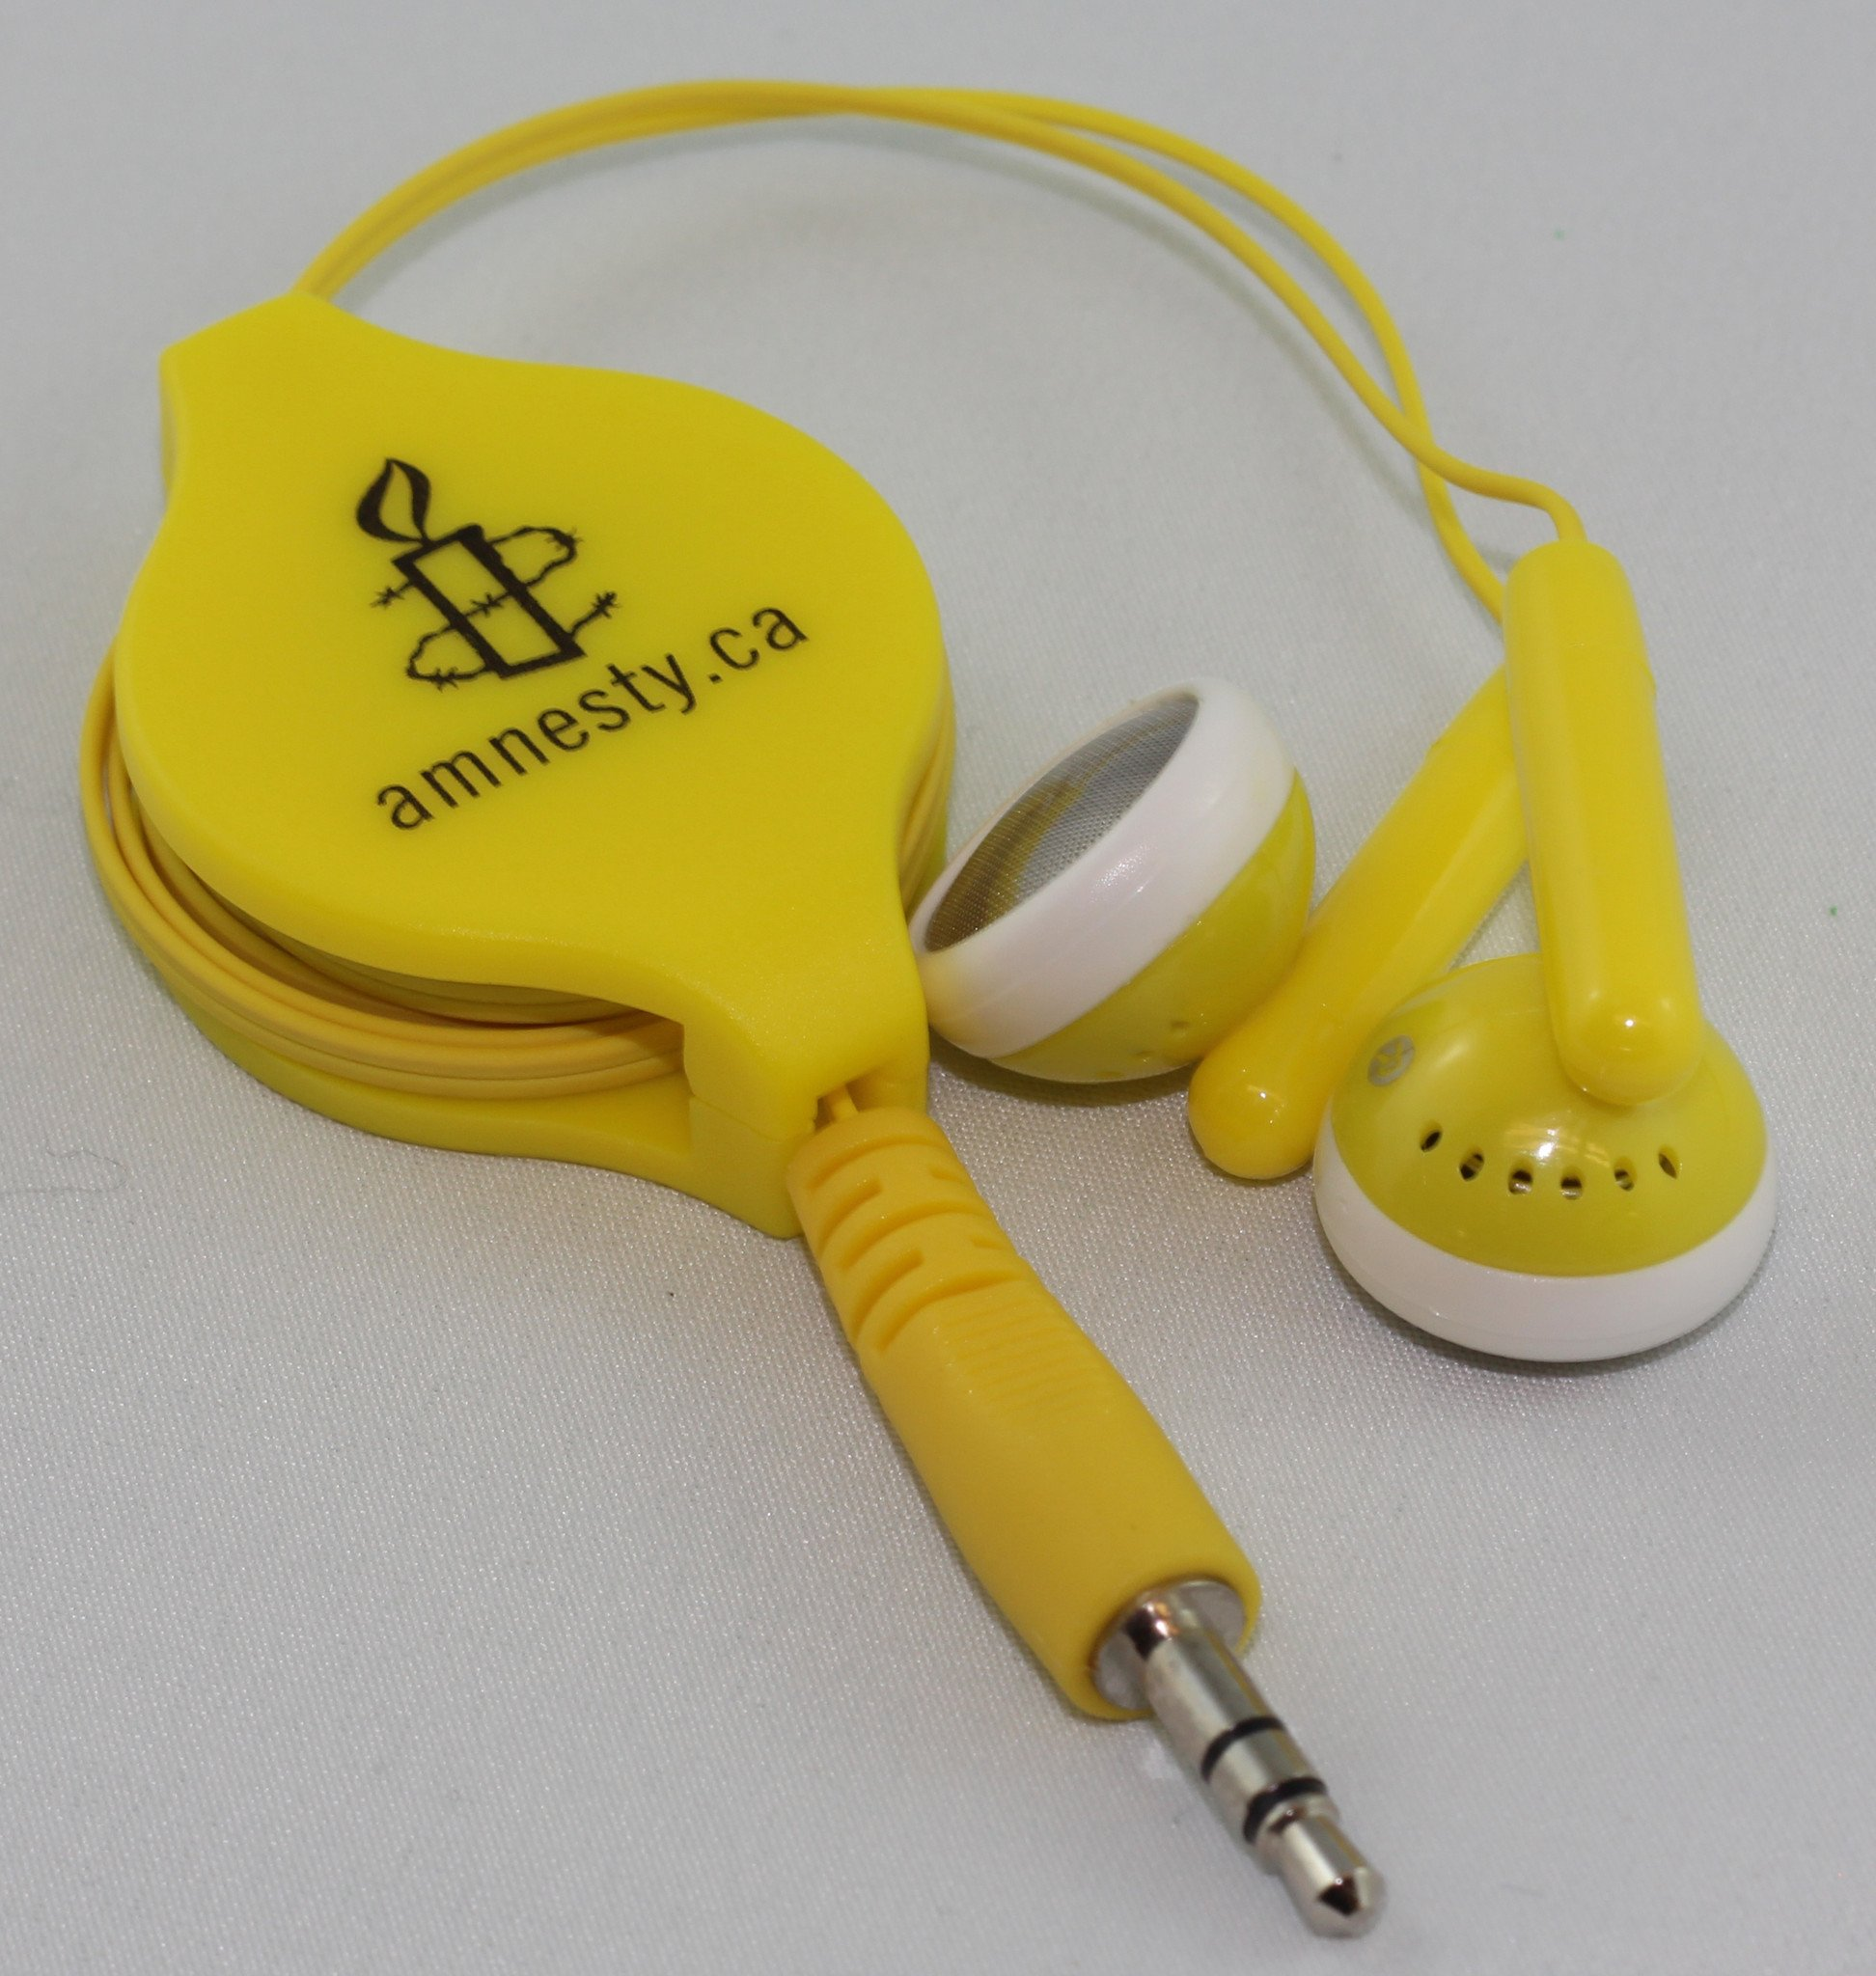 Amnesty Brand Ear Buds